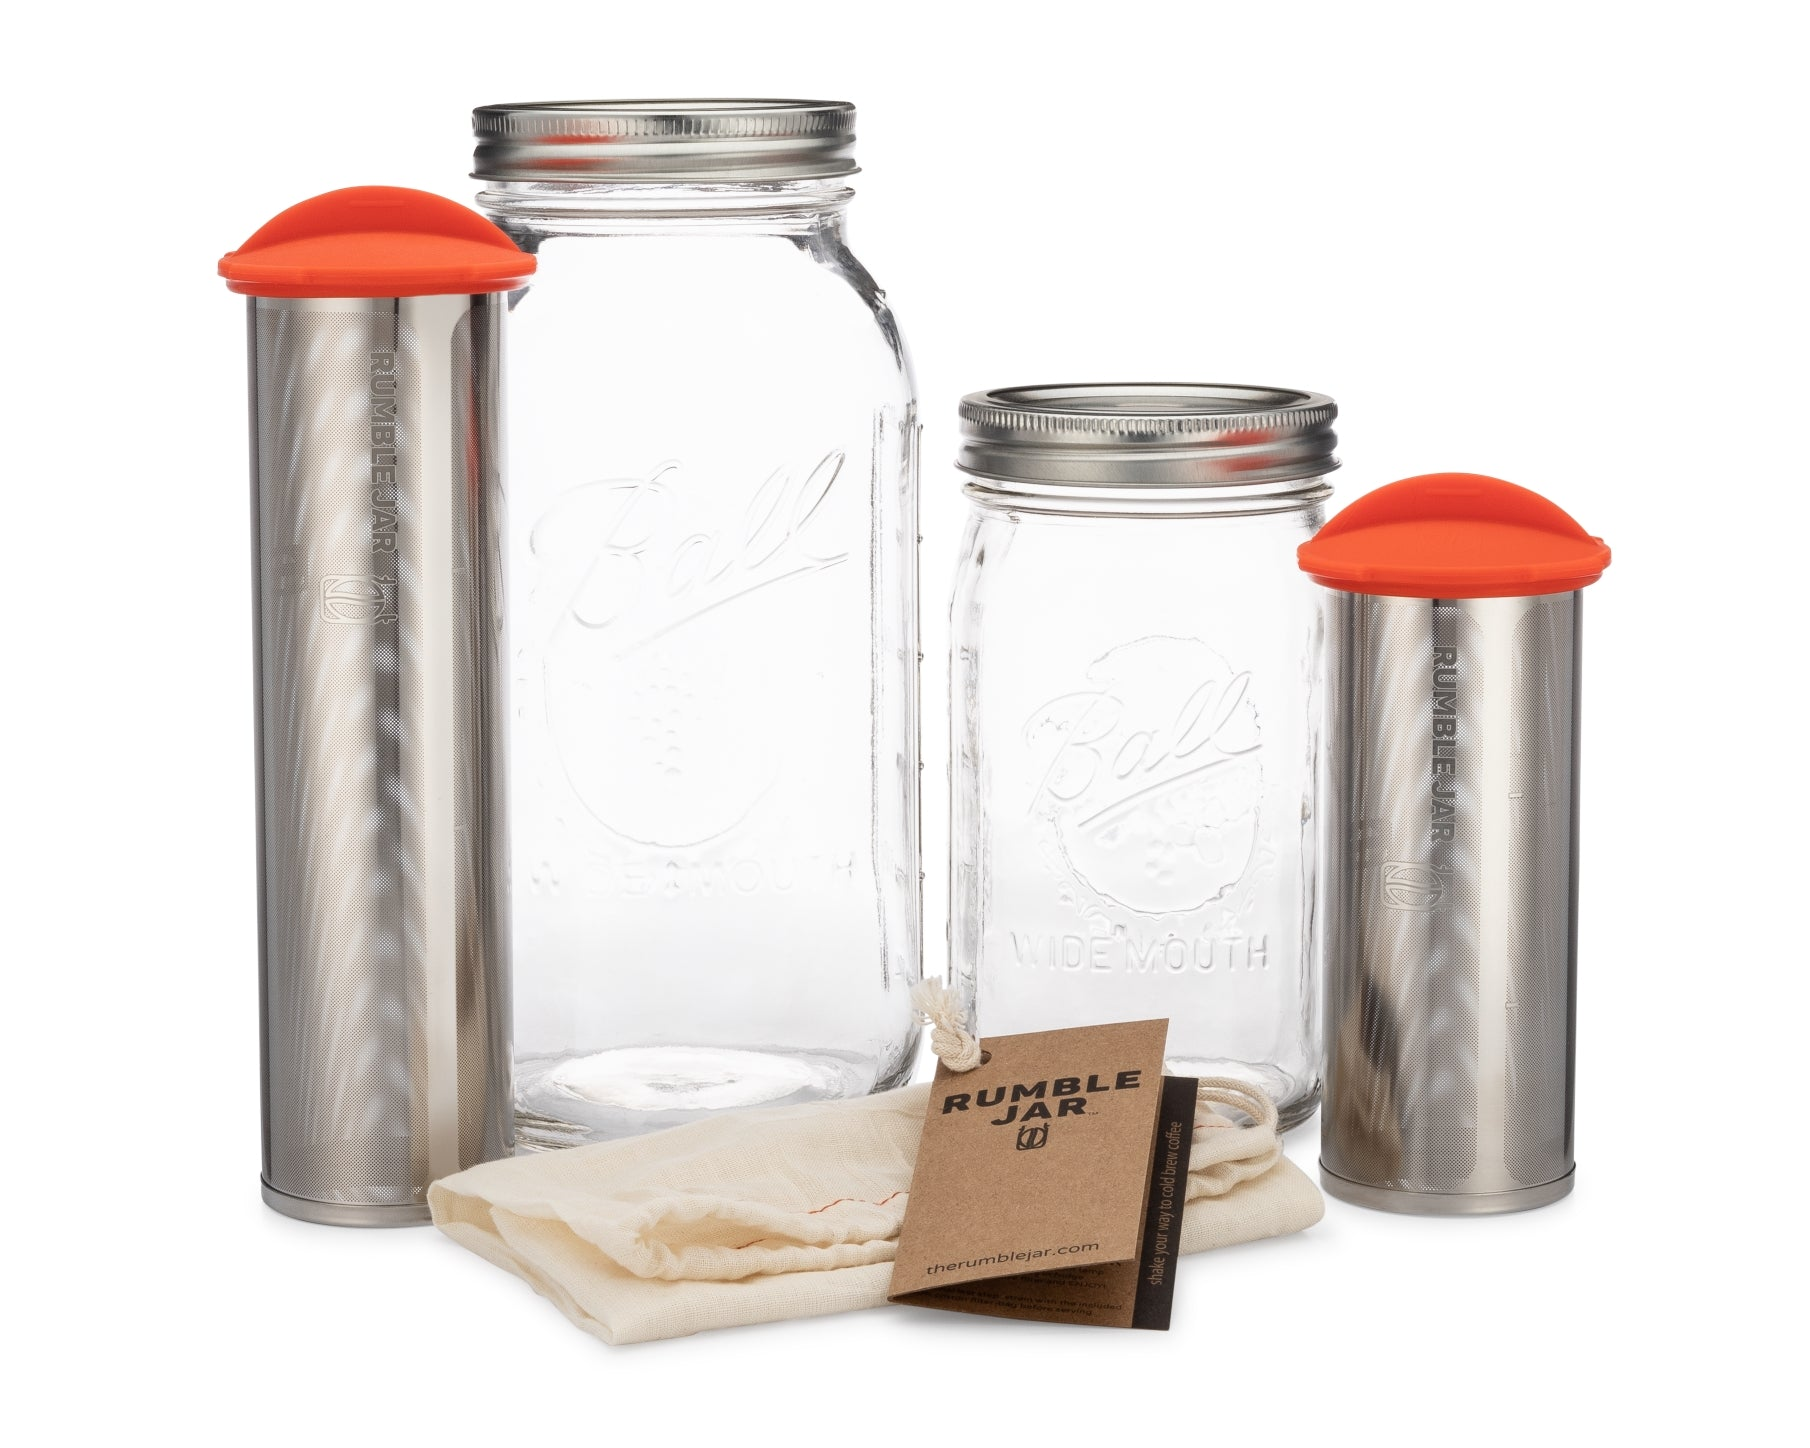 Rumble Jar quart size and half gallon size cold brew coffee makers and their Mason jars